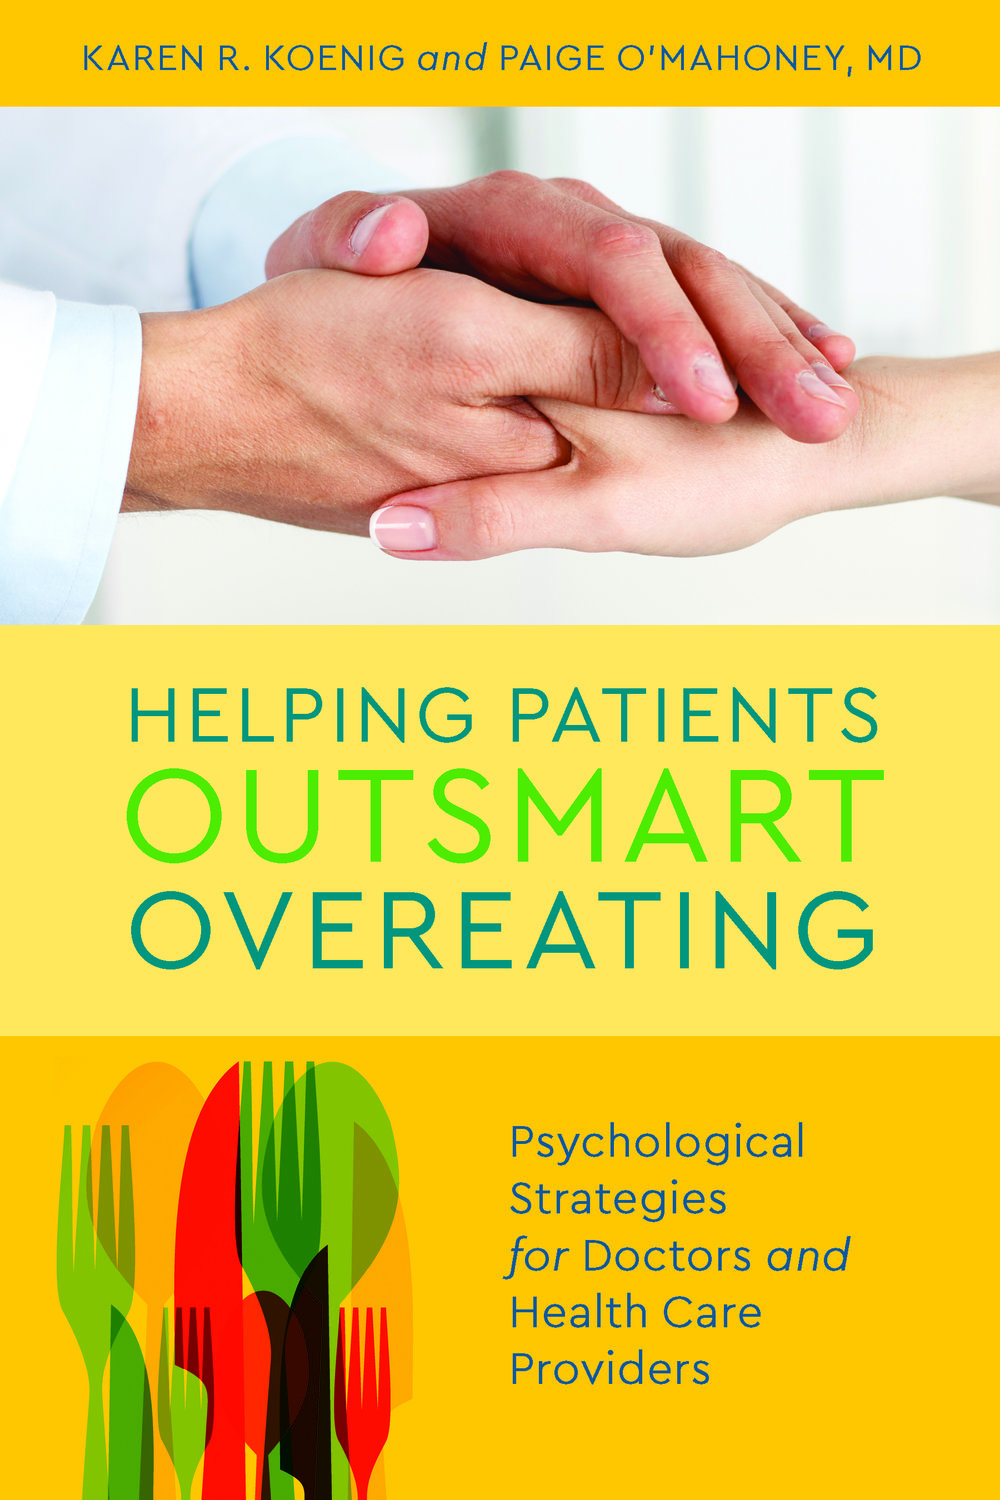 Companion text: Award-winning book, Helping Patients Outsmart Overeating: Psychological Strategies for Doctors and Health Care Providers, by Paige O'Mahoney, M.D., CHWC, and Karen R. Koenig, M.Ed., LCSW. Copies may be ordered at your favorite online retailer.